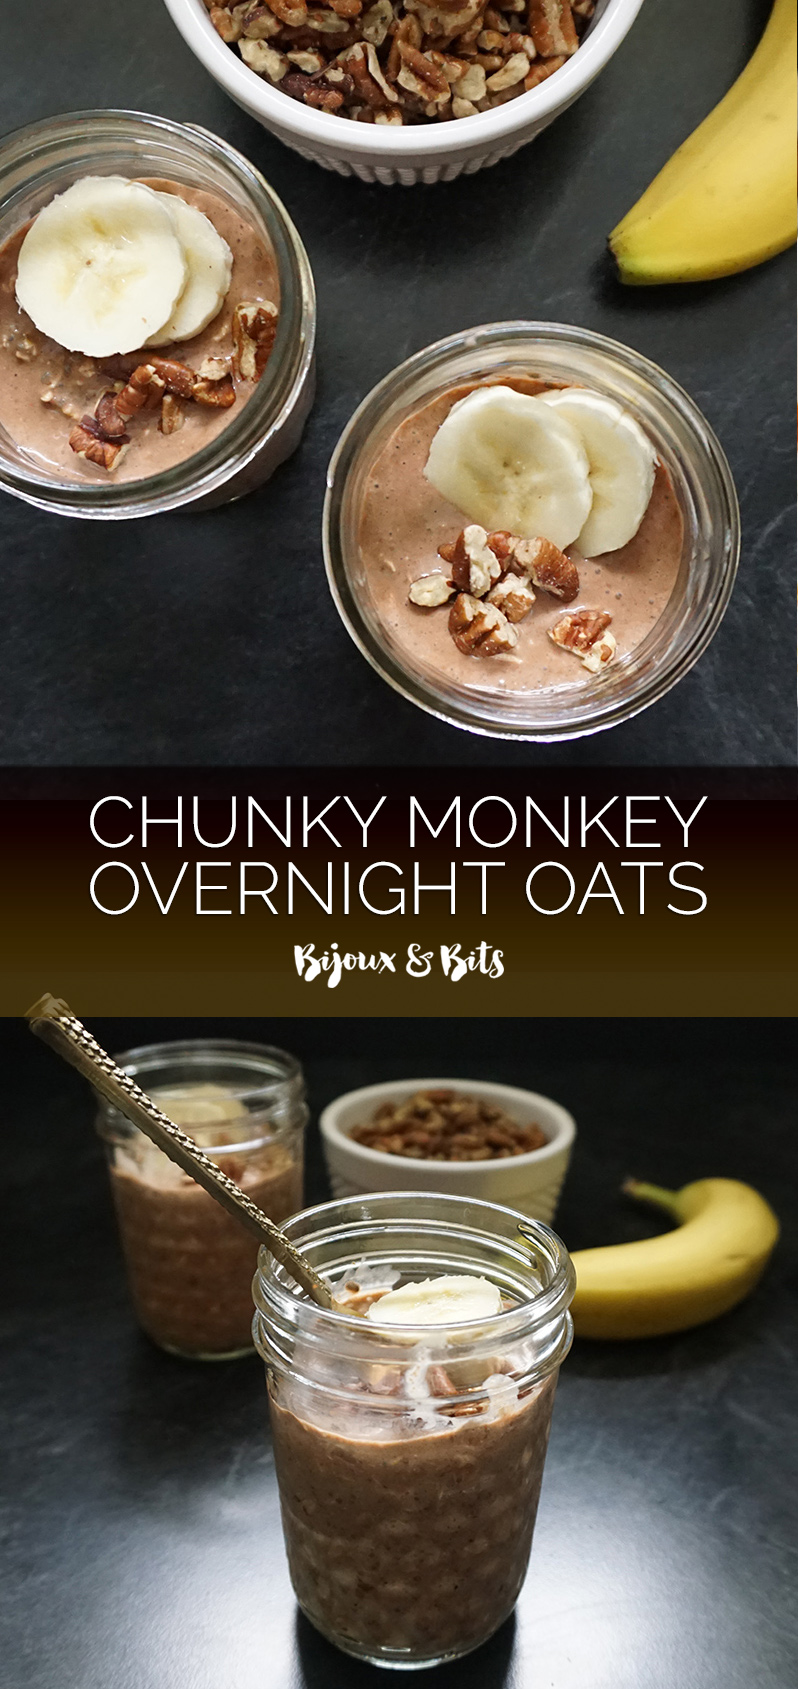 Chunky monkey overnight oats from @bijouxandbits #overnightoats